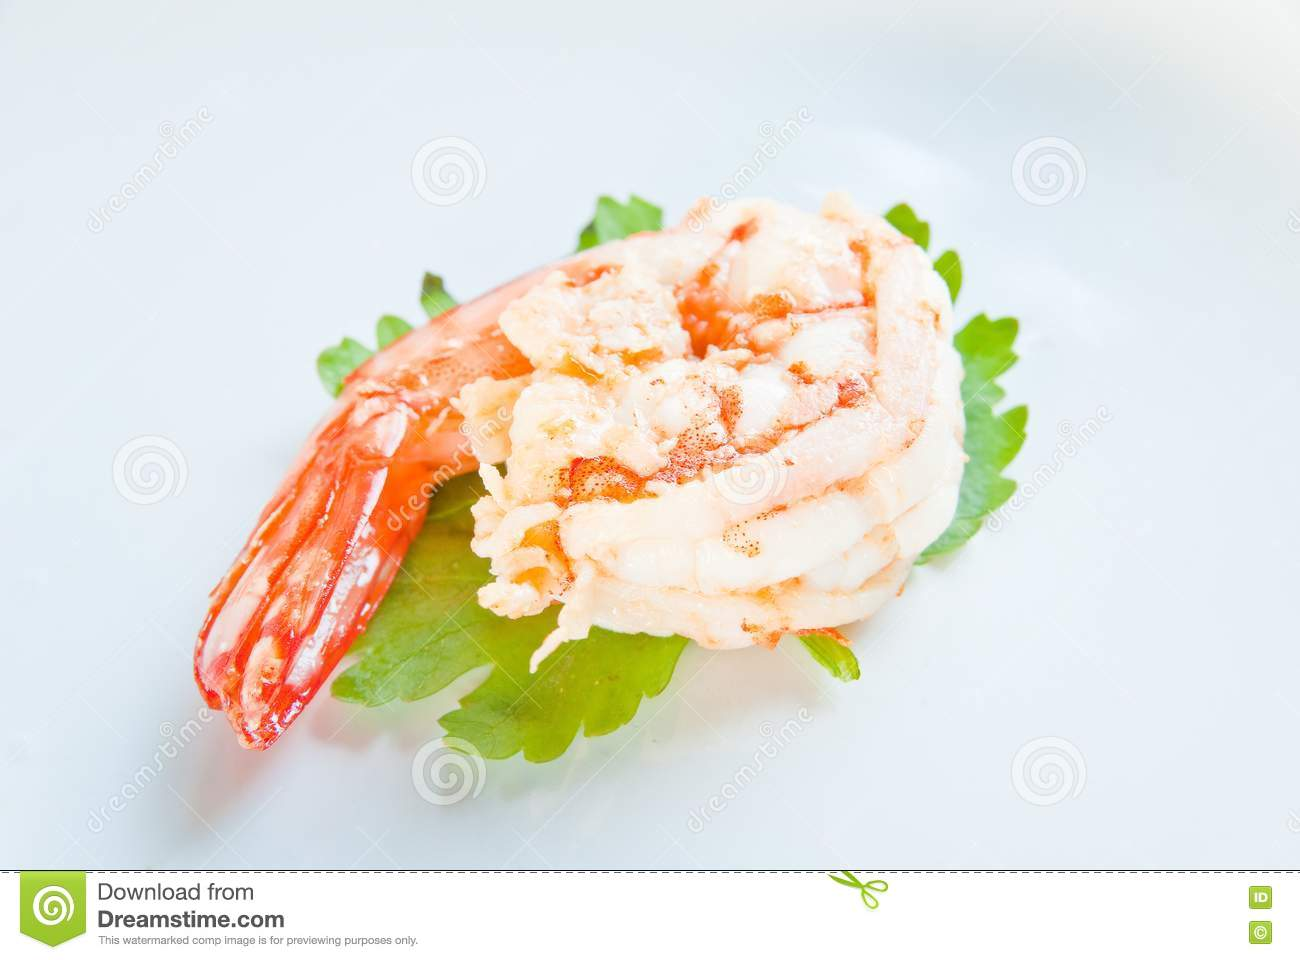 Jumbo Shrimp Royalty Free Stock Image - Image: 18648096